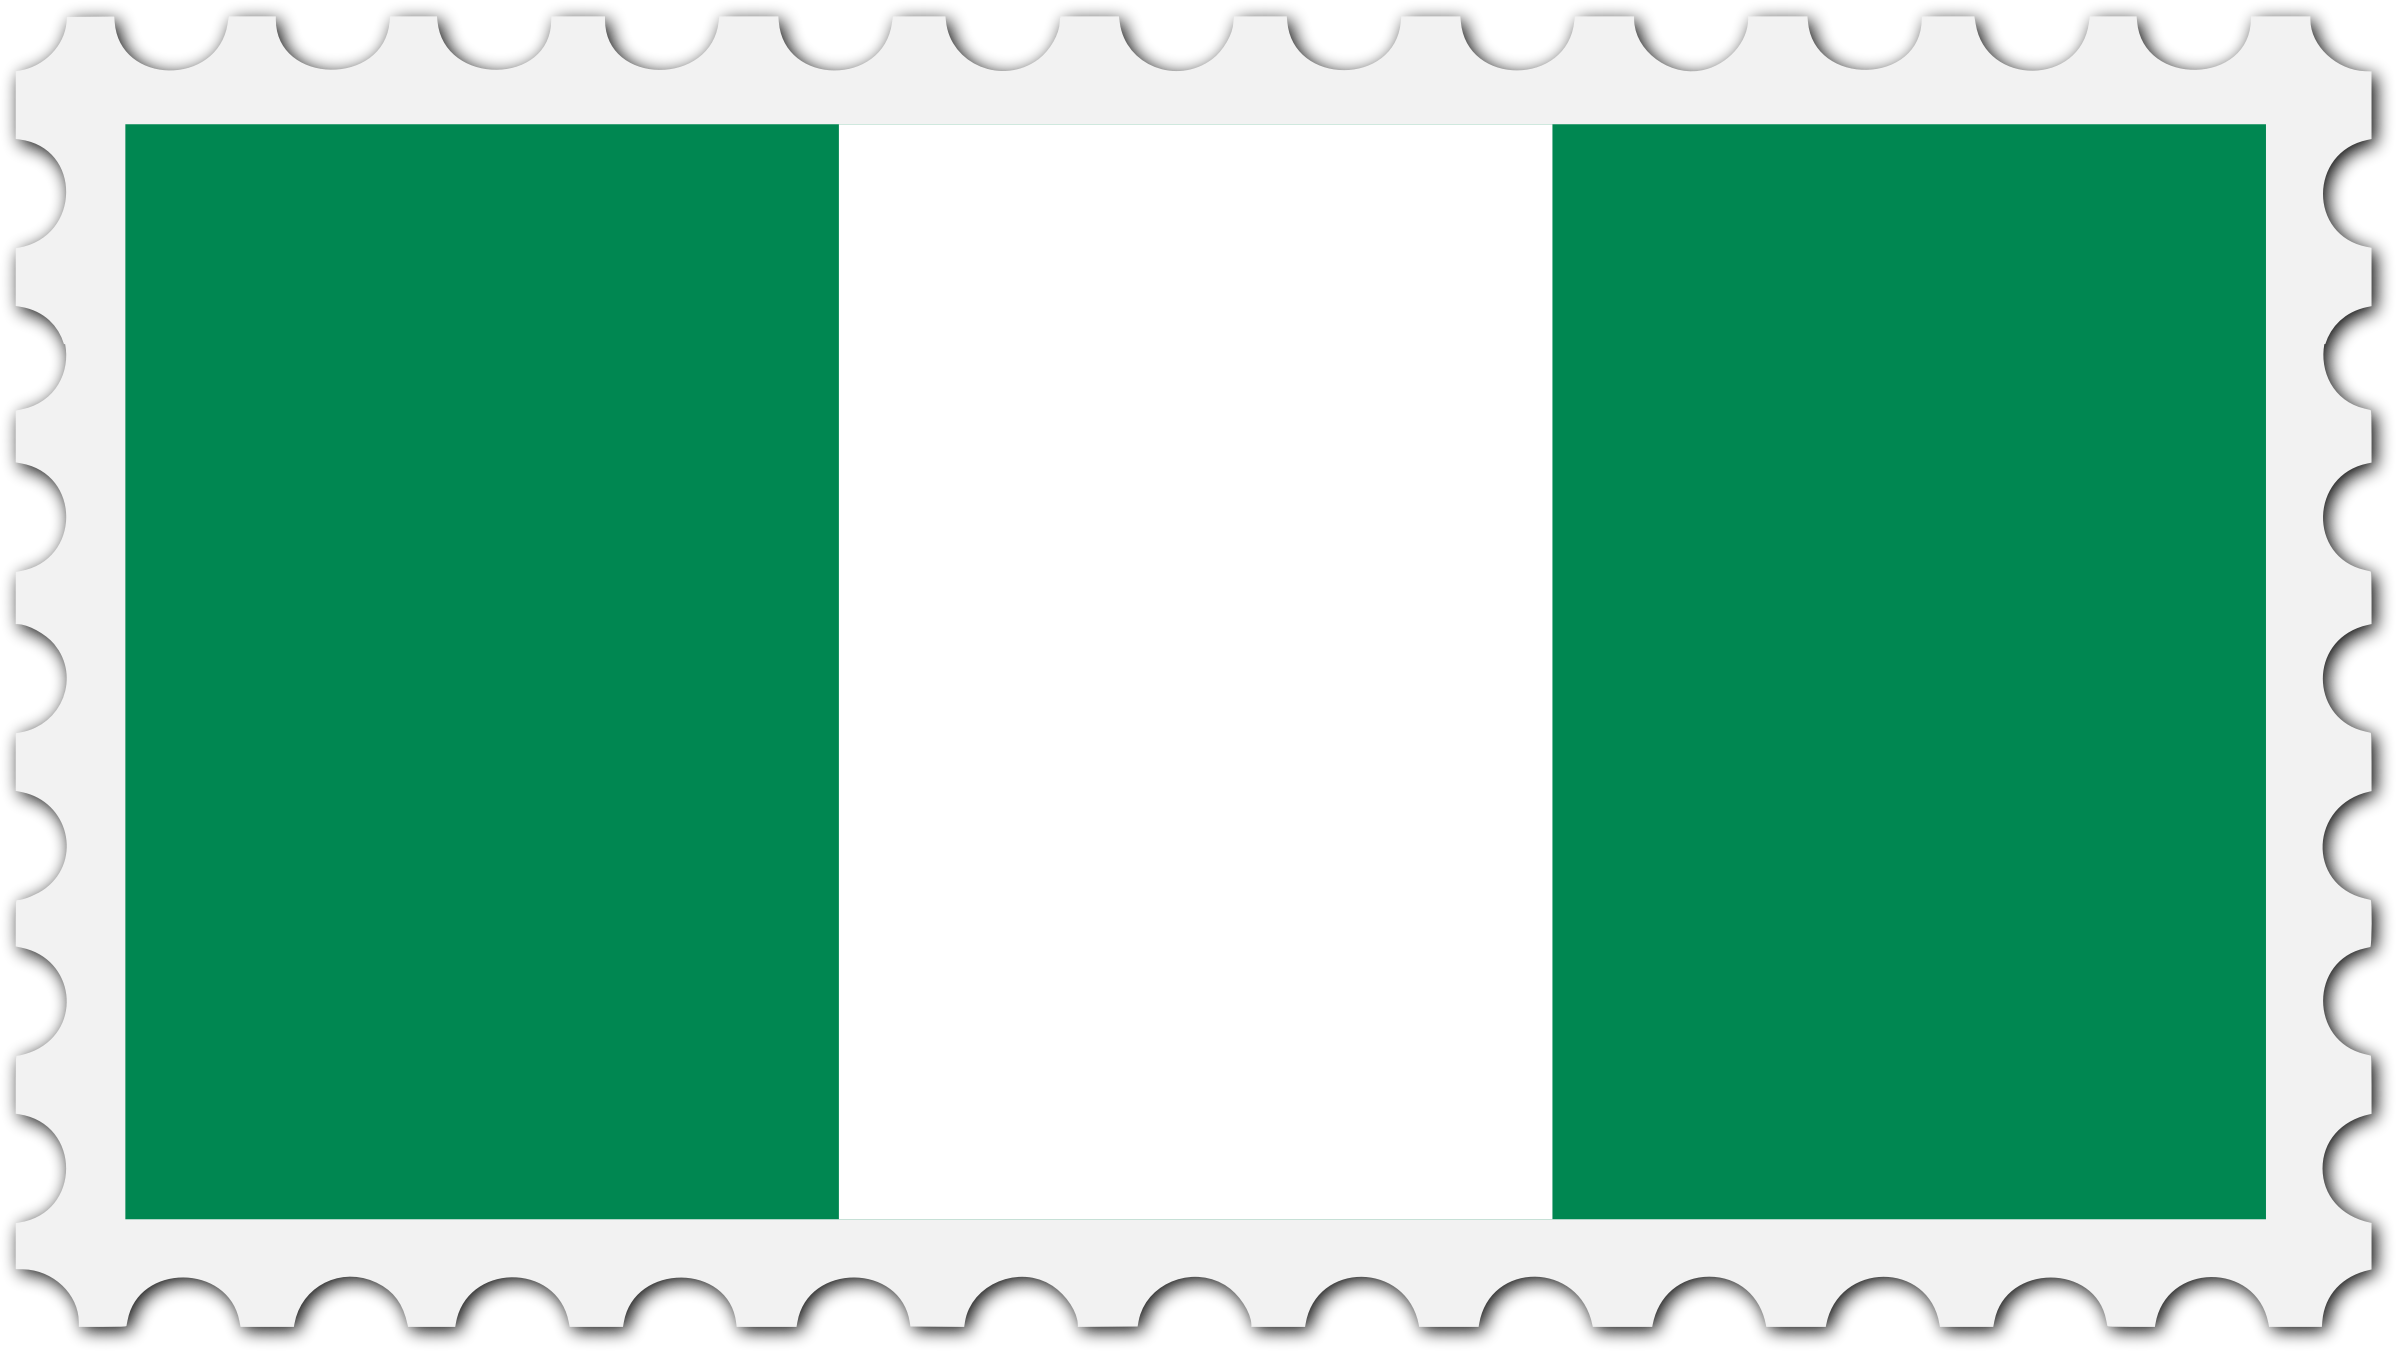 Nigeria flag stamp by Firkin